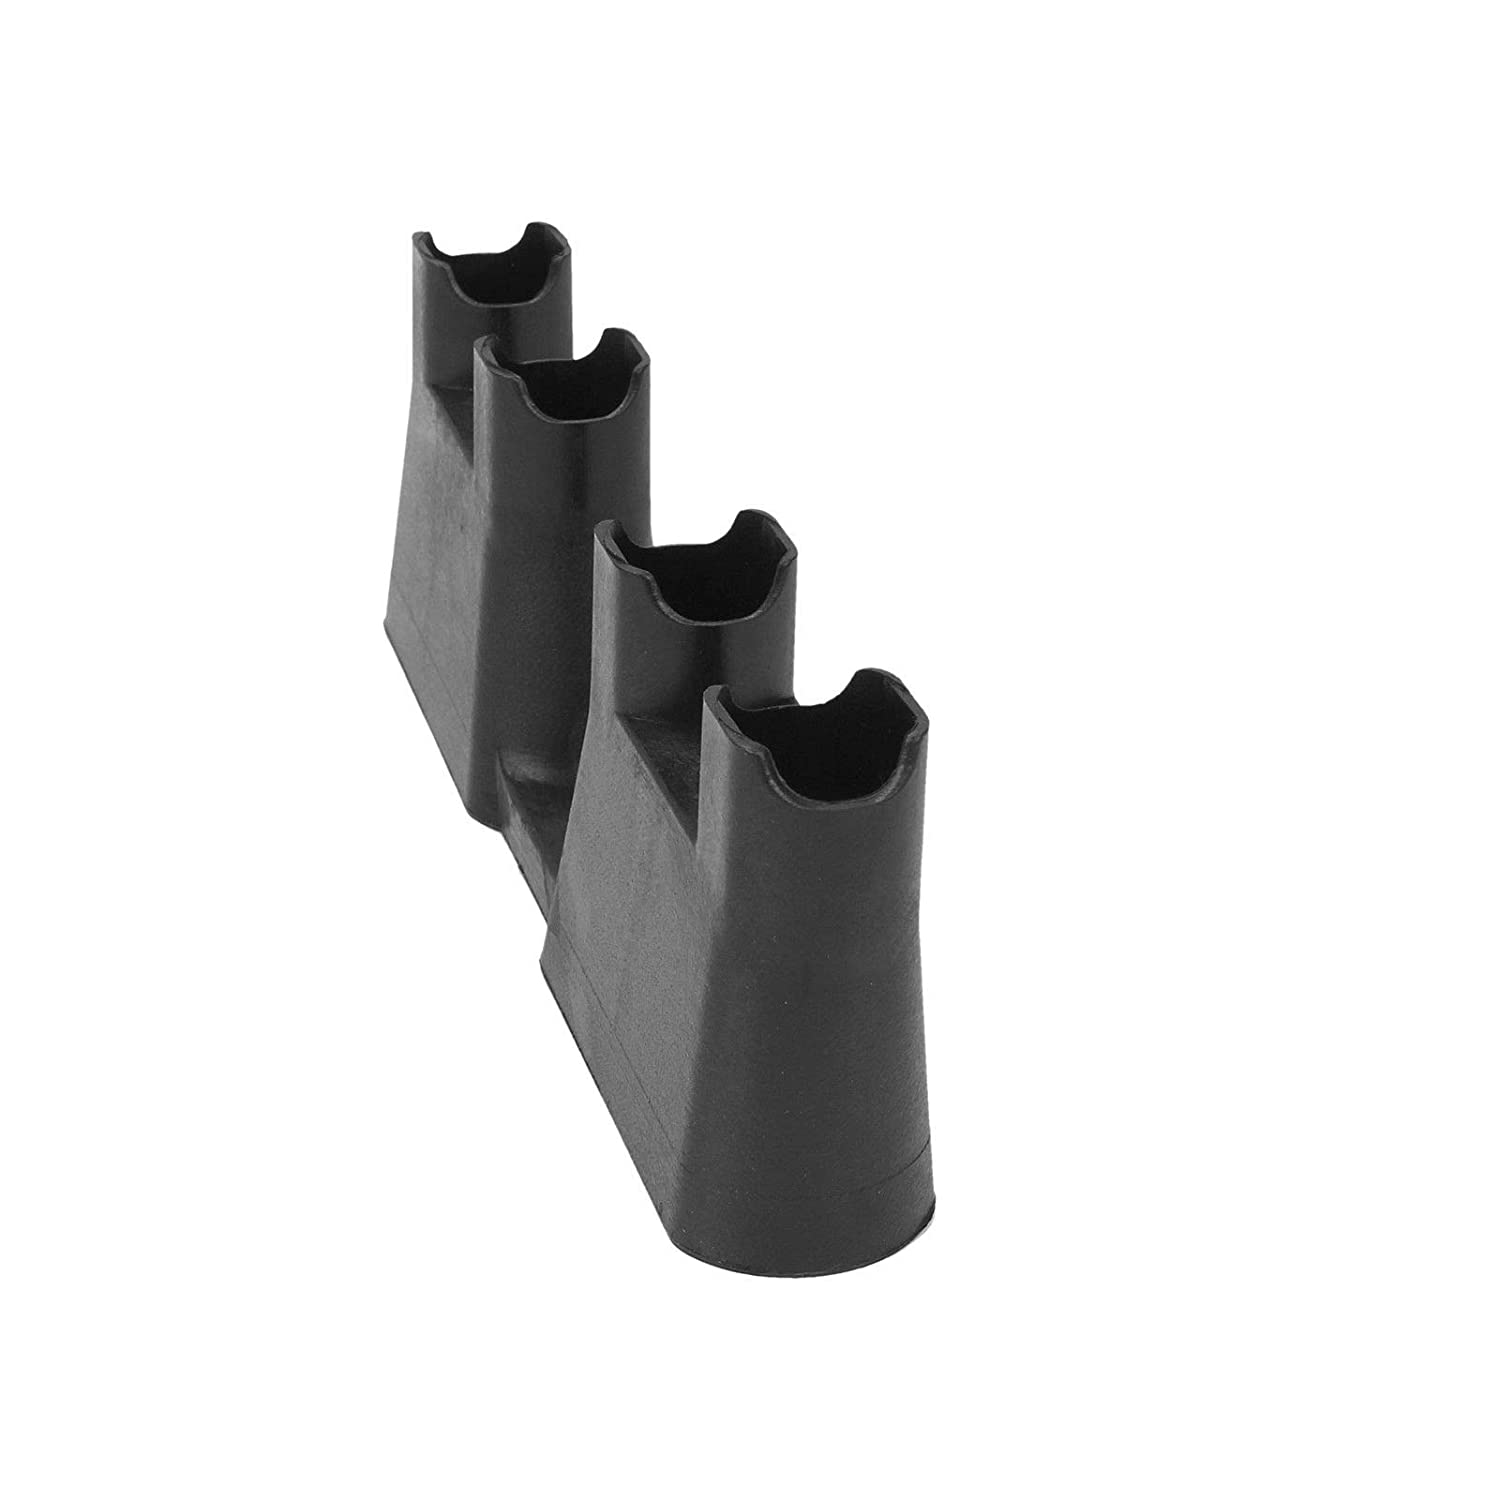 1//4 Shank USA 90042 Step Drill Bit ATE Pro 1//16 Increments Quick-Change 1//4 to 3//4